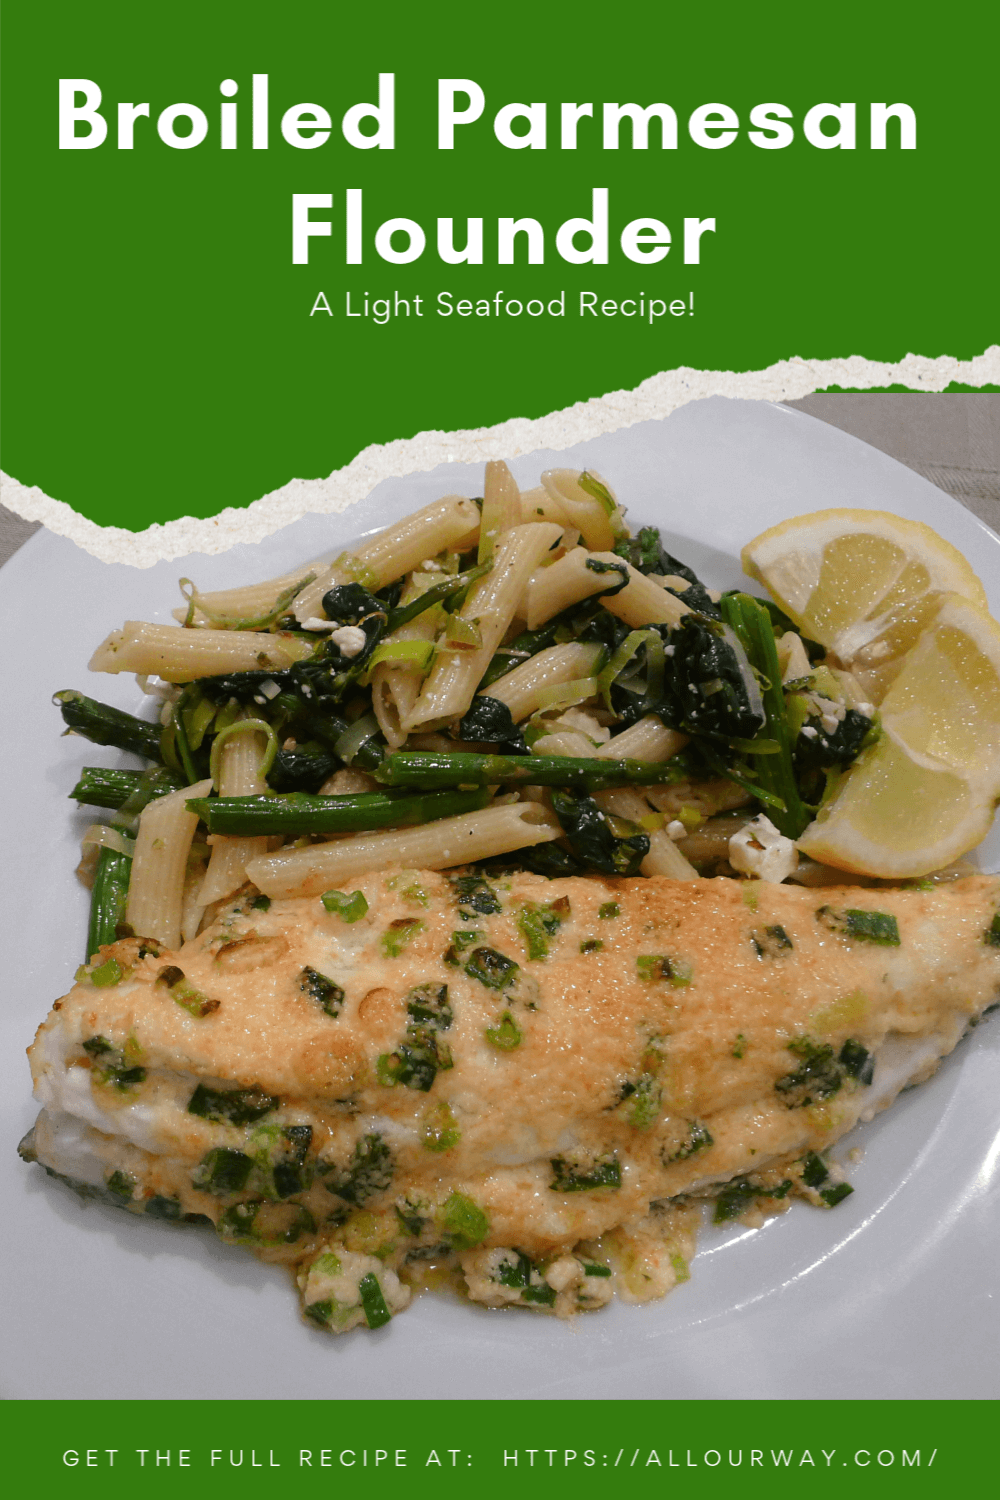 Delicious broiled flounder recipe. The fish is first brushed with lemon juice then topped with a coat of parmesan, butter, mayo, and green onion. The flavor is rich but the calories are low. This recipe is great on your menu during seafood night and Lent. #flounder, #broiledflounder, #parmesanbroiledseafood, #broiledfish, ##broiledseafood, #Lentenfishdinner, #easyfishdish, #lowcalorieseafood, #healthyseafood